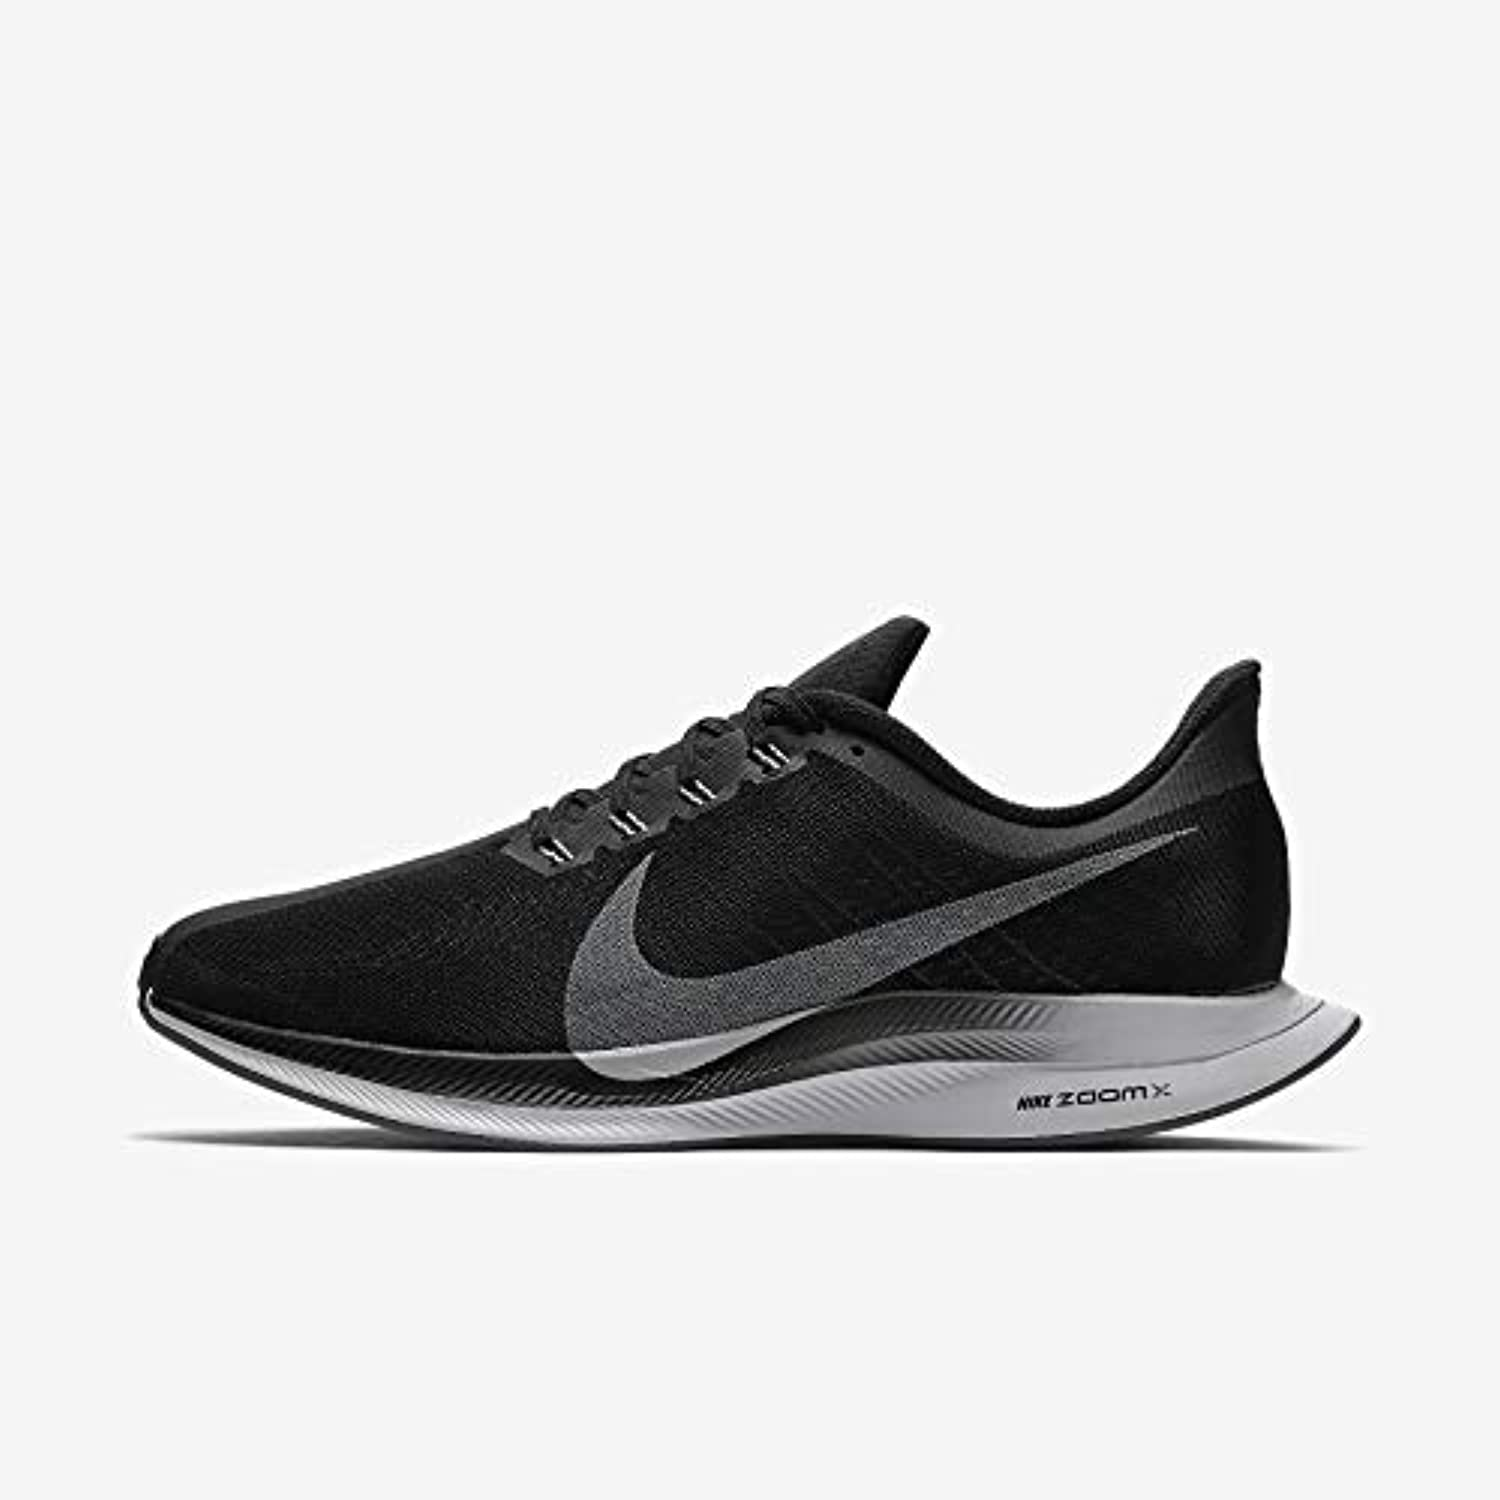 nike hommes & eacute; zoom pegasus 35 turbo parent faible haut baskets b07g5nbgjh parent turbo 02c07f